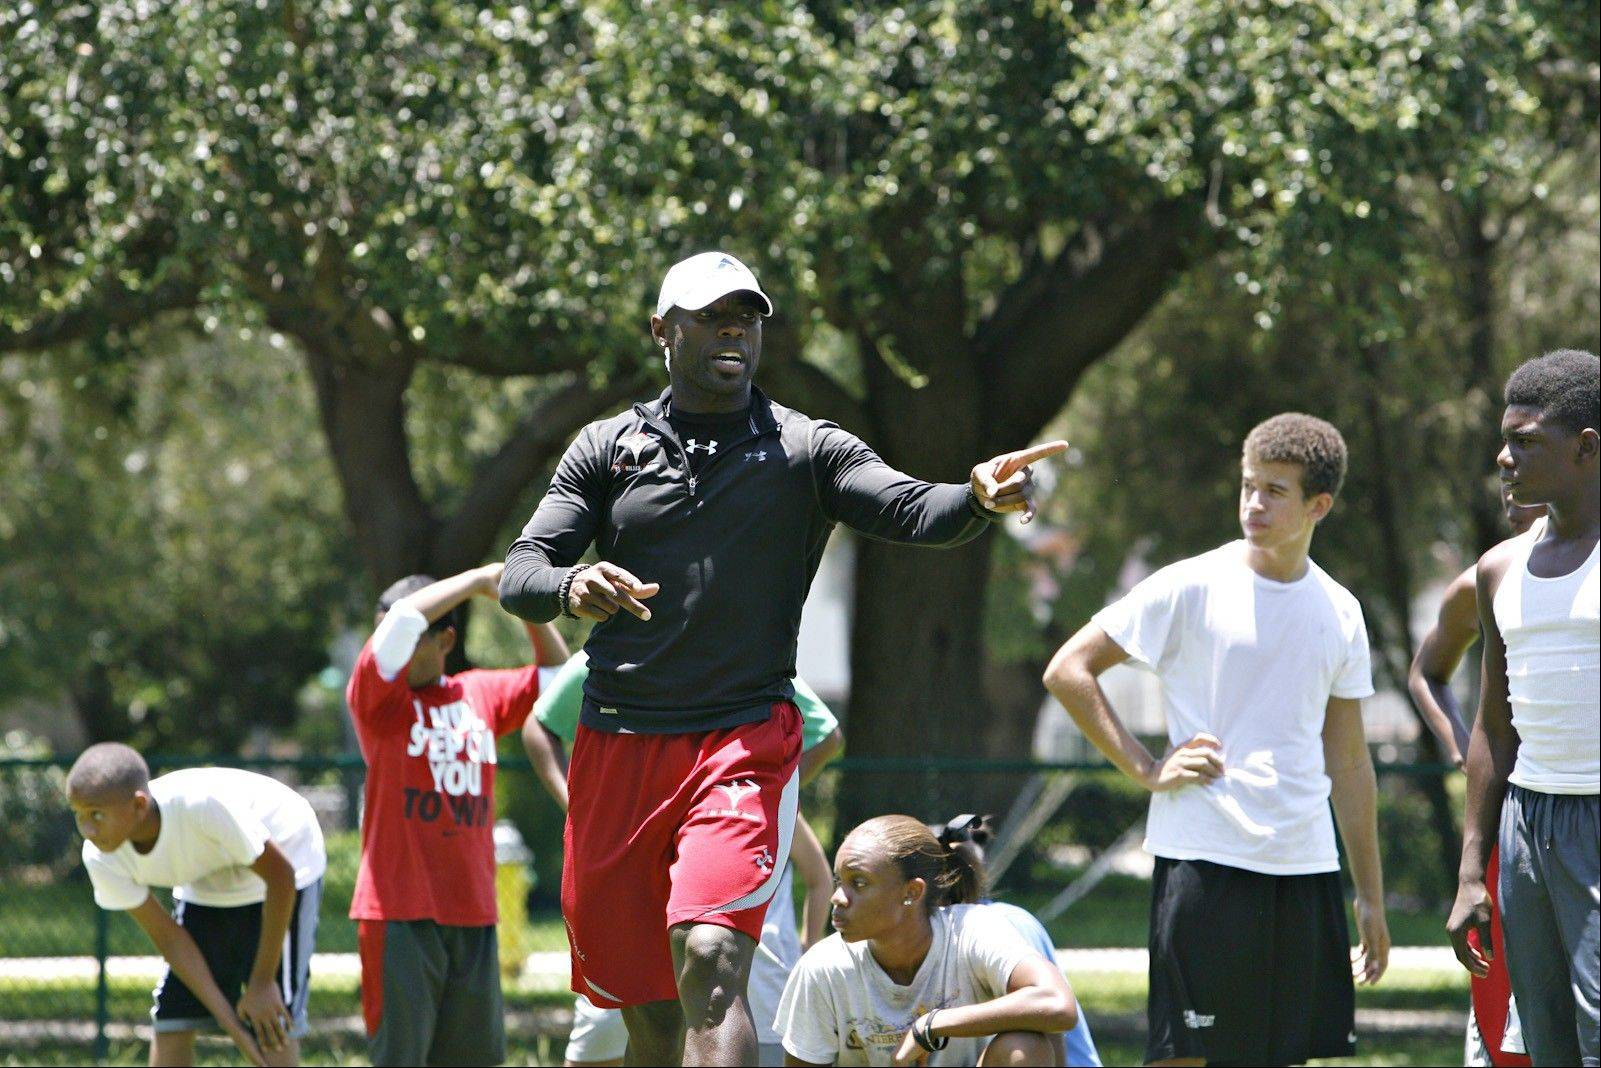 Andre Hudson explains the next drill for athletes he coaches in a summer strength training and conditioning camp called Lives Under Construction at St. Petersburg's Lake Vista Park.